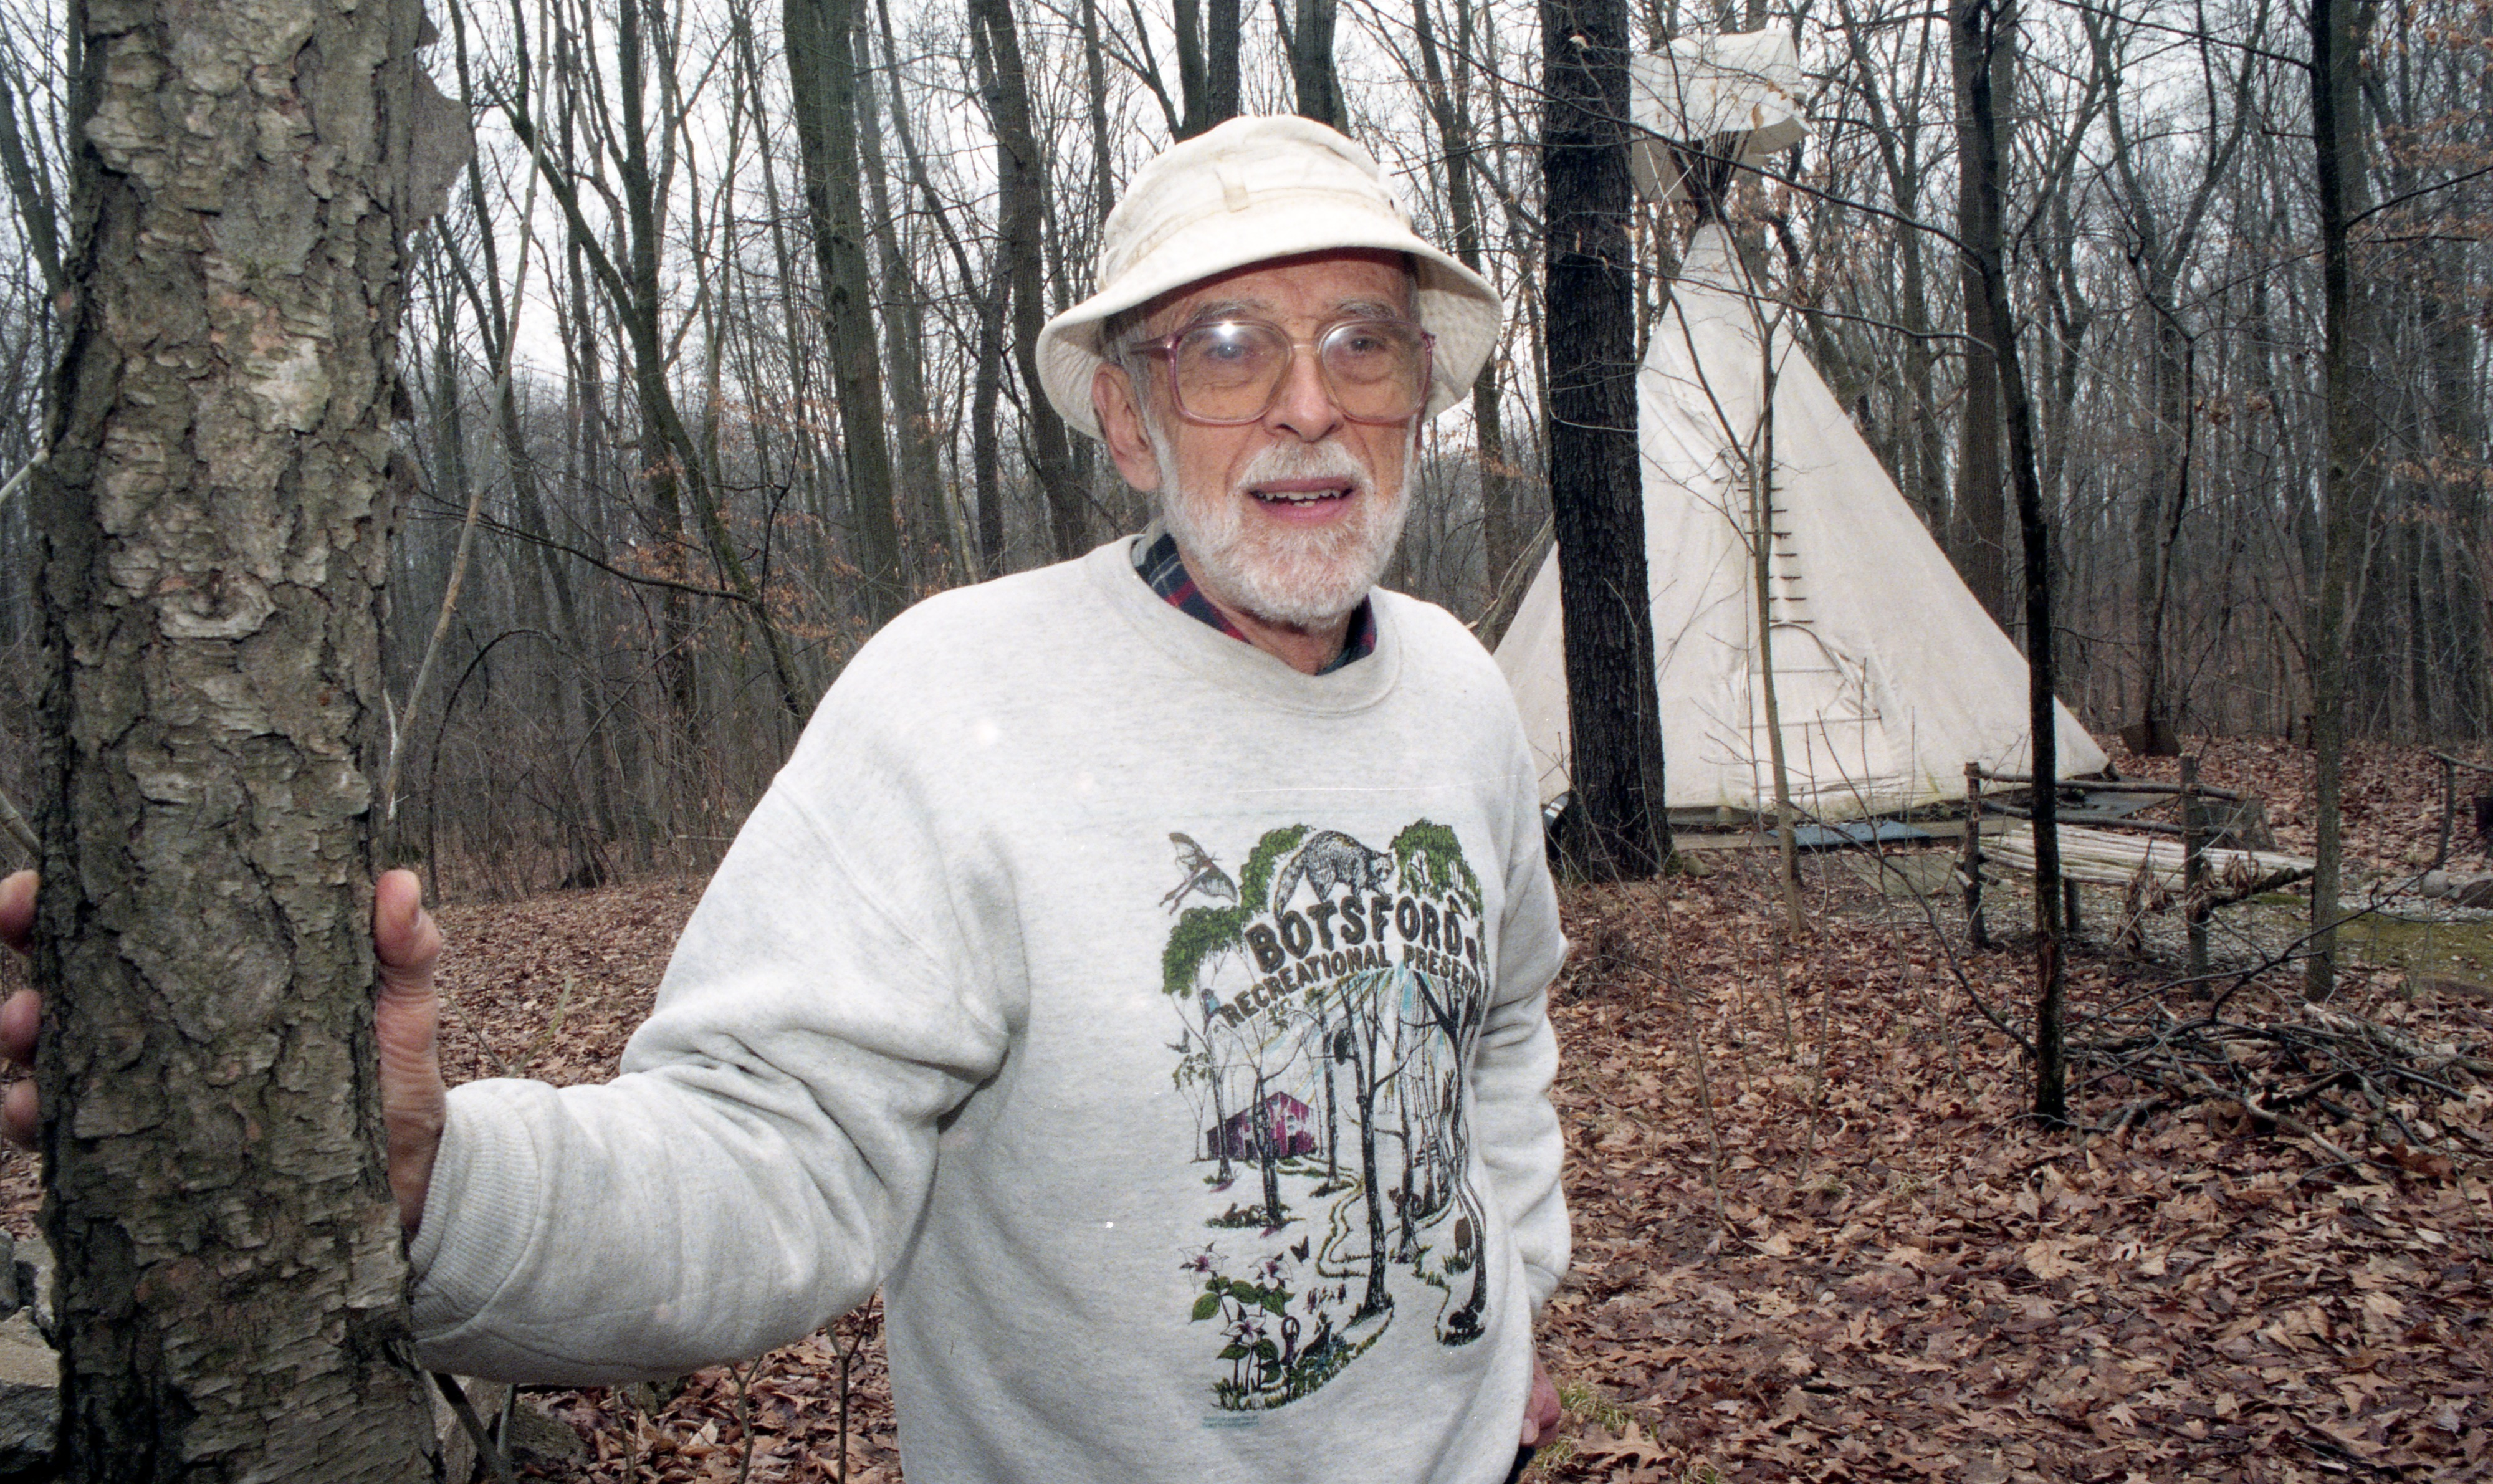 Don Botsford On His 20-Acre Land Preserve, April 1999 image